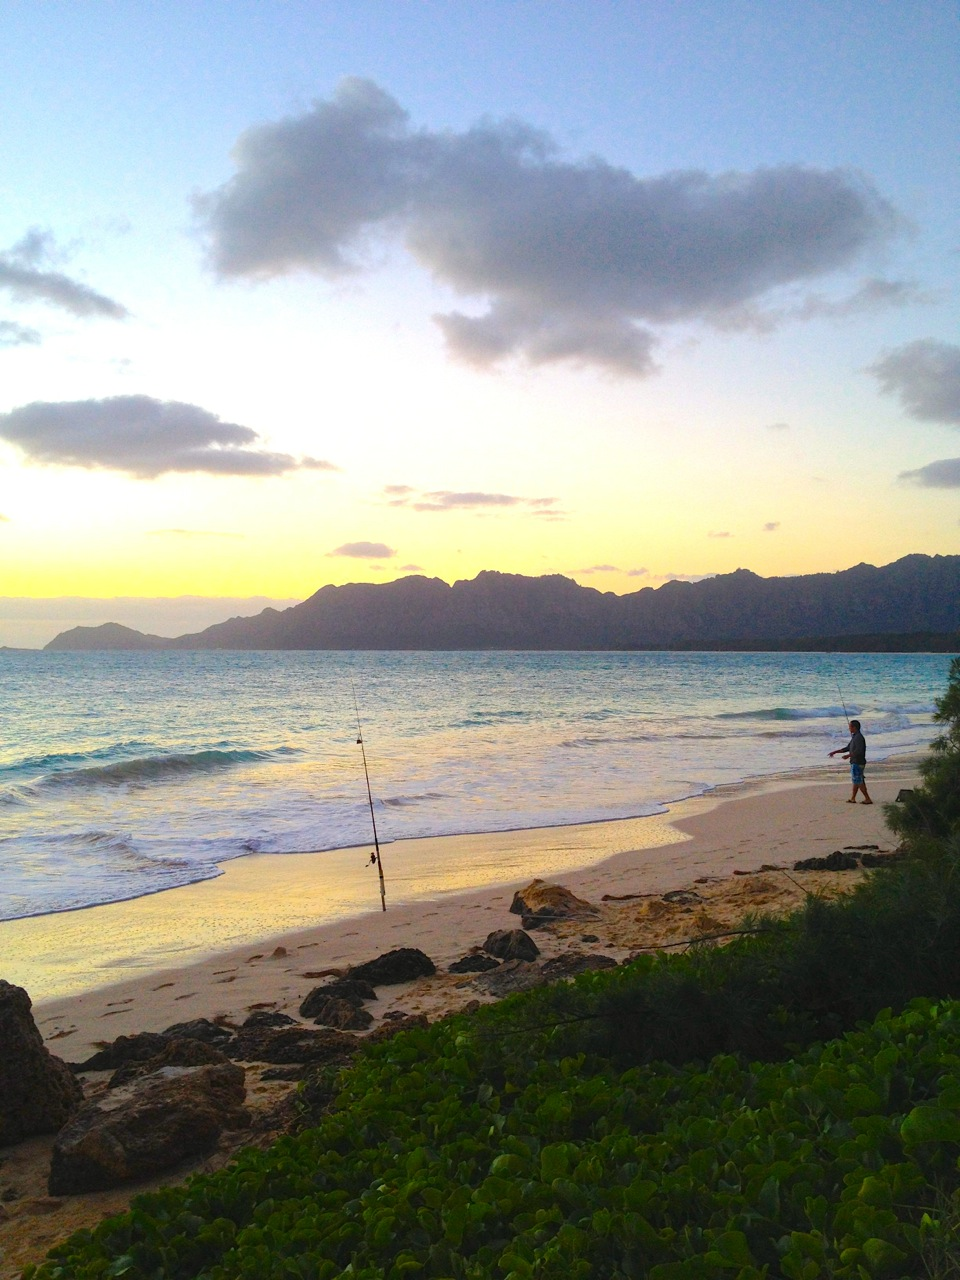 Fishing at sunrise - Bellows beach, Oahu, Hawaii | Intentional Travelers